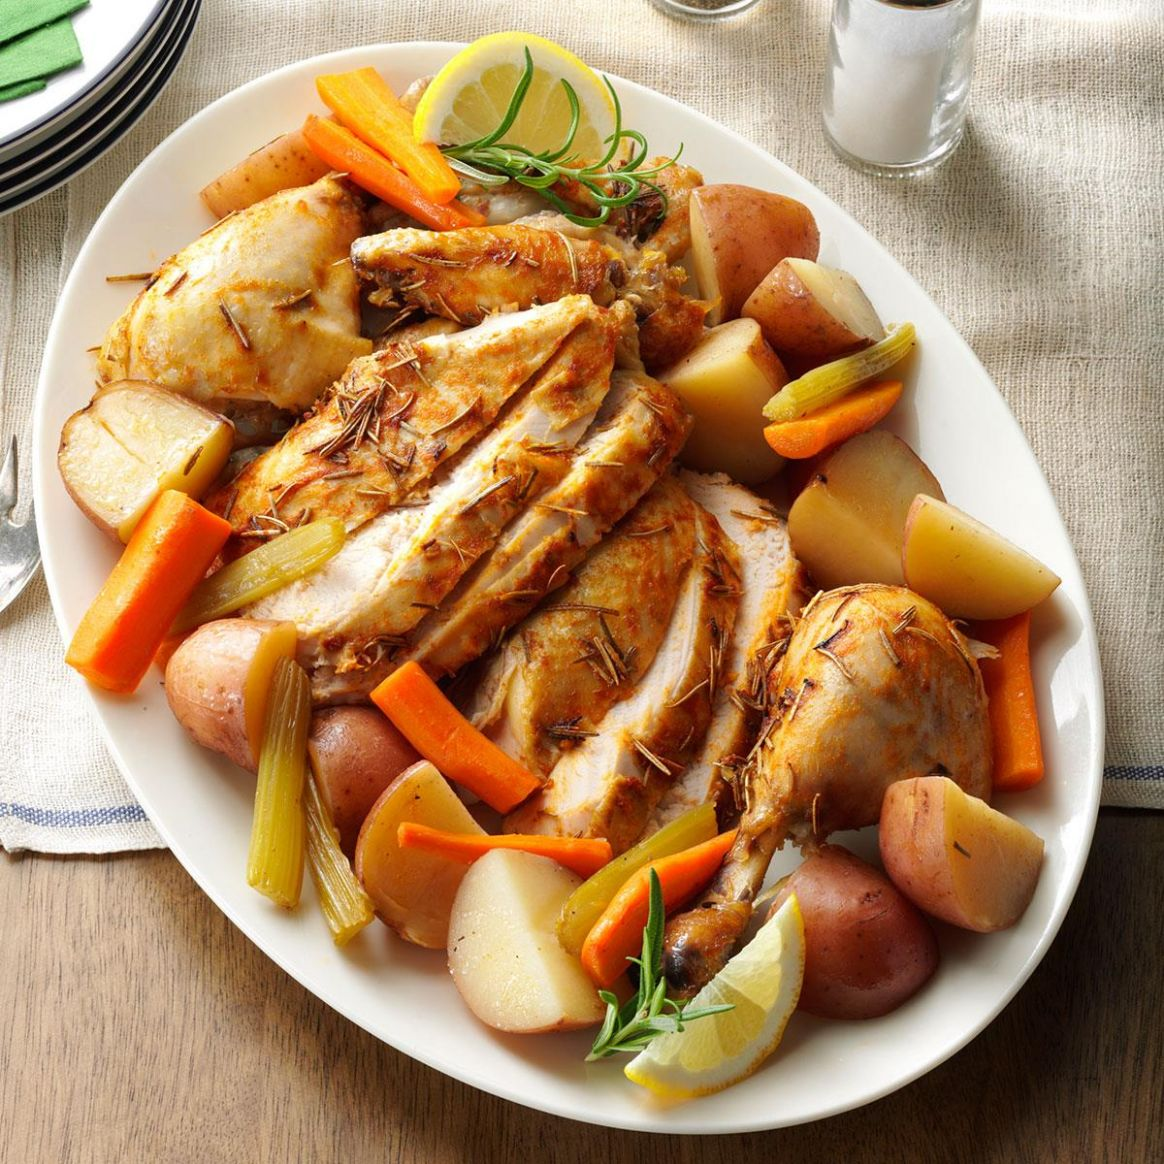 Slow-Roasted Chicken with Vegetables - Recipes Chicken Vegetables